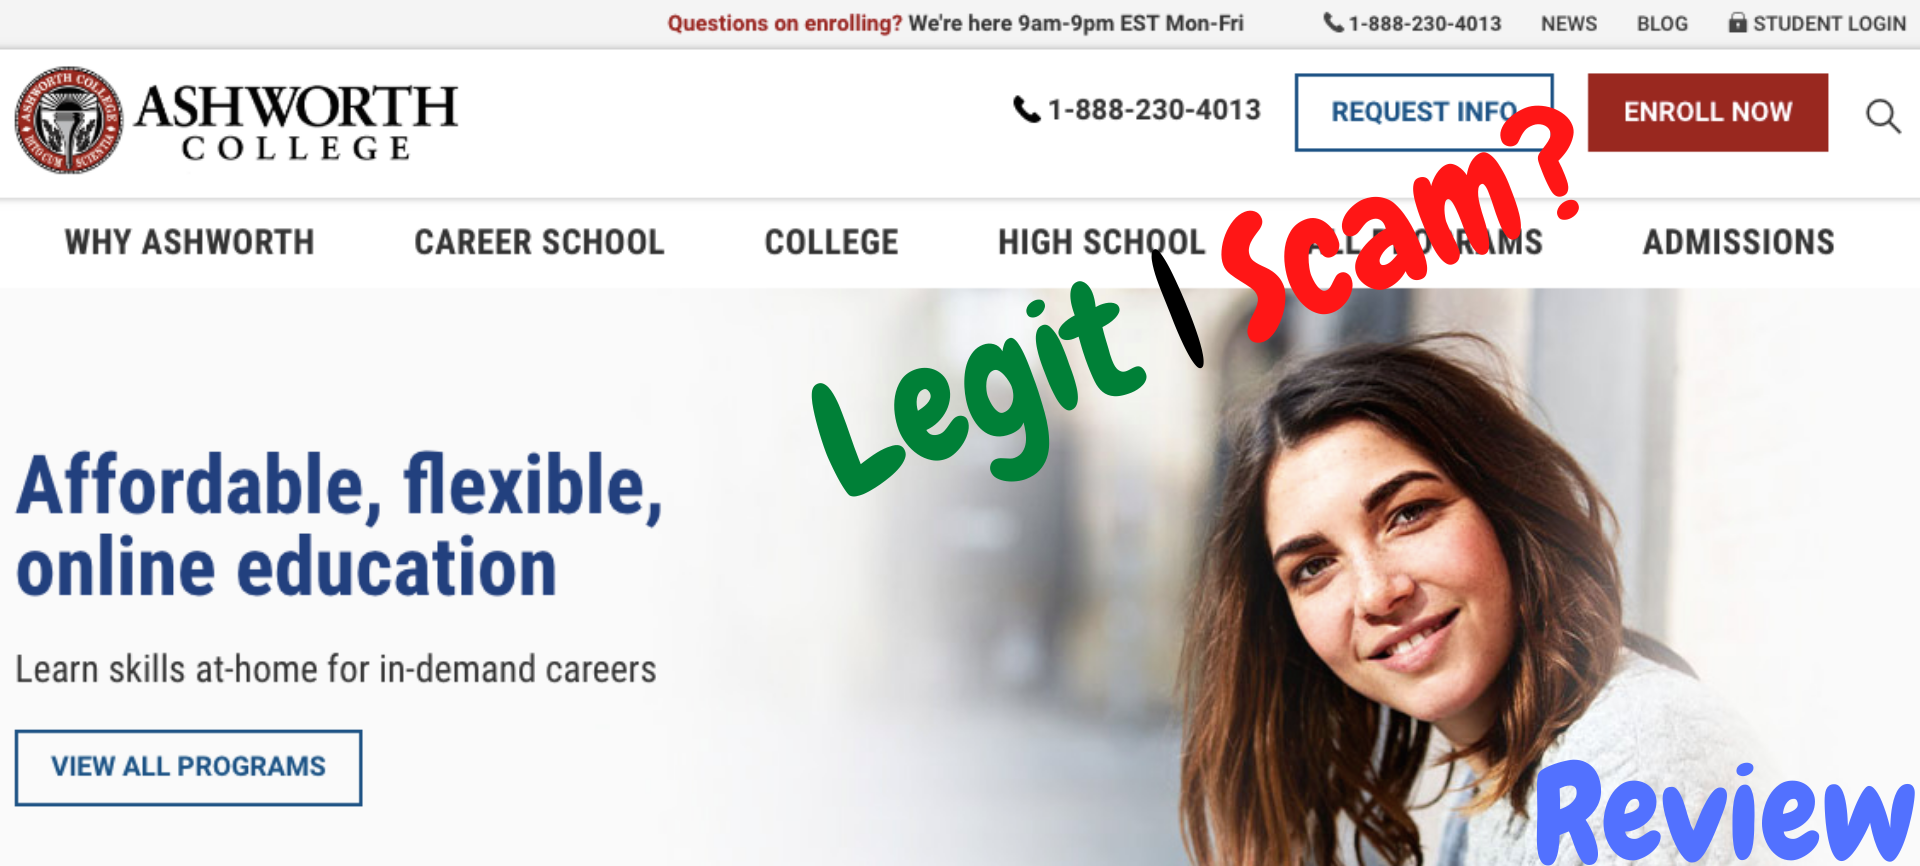 Is Ashworth College a scam? Ashworth College Homepage